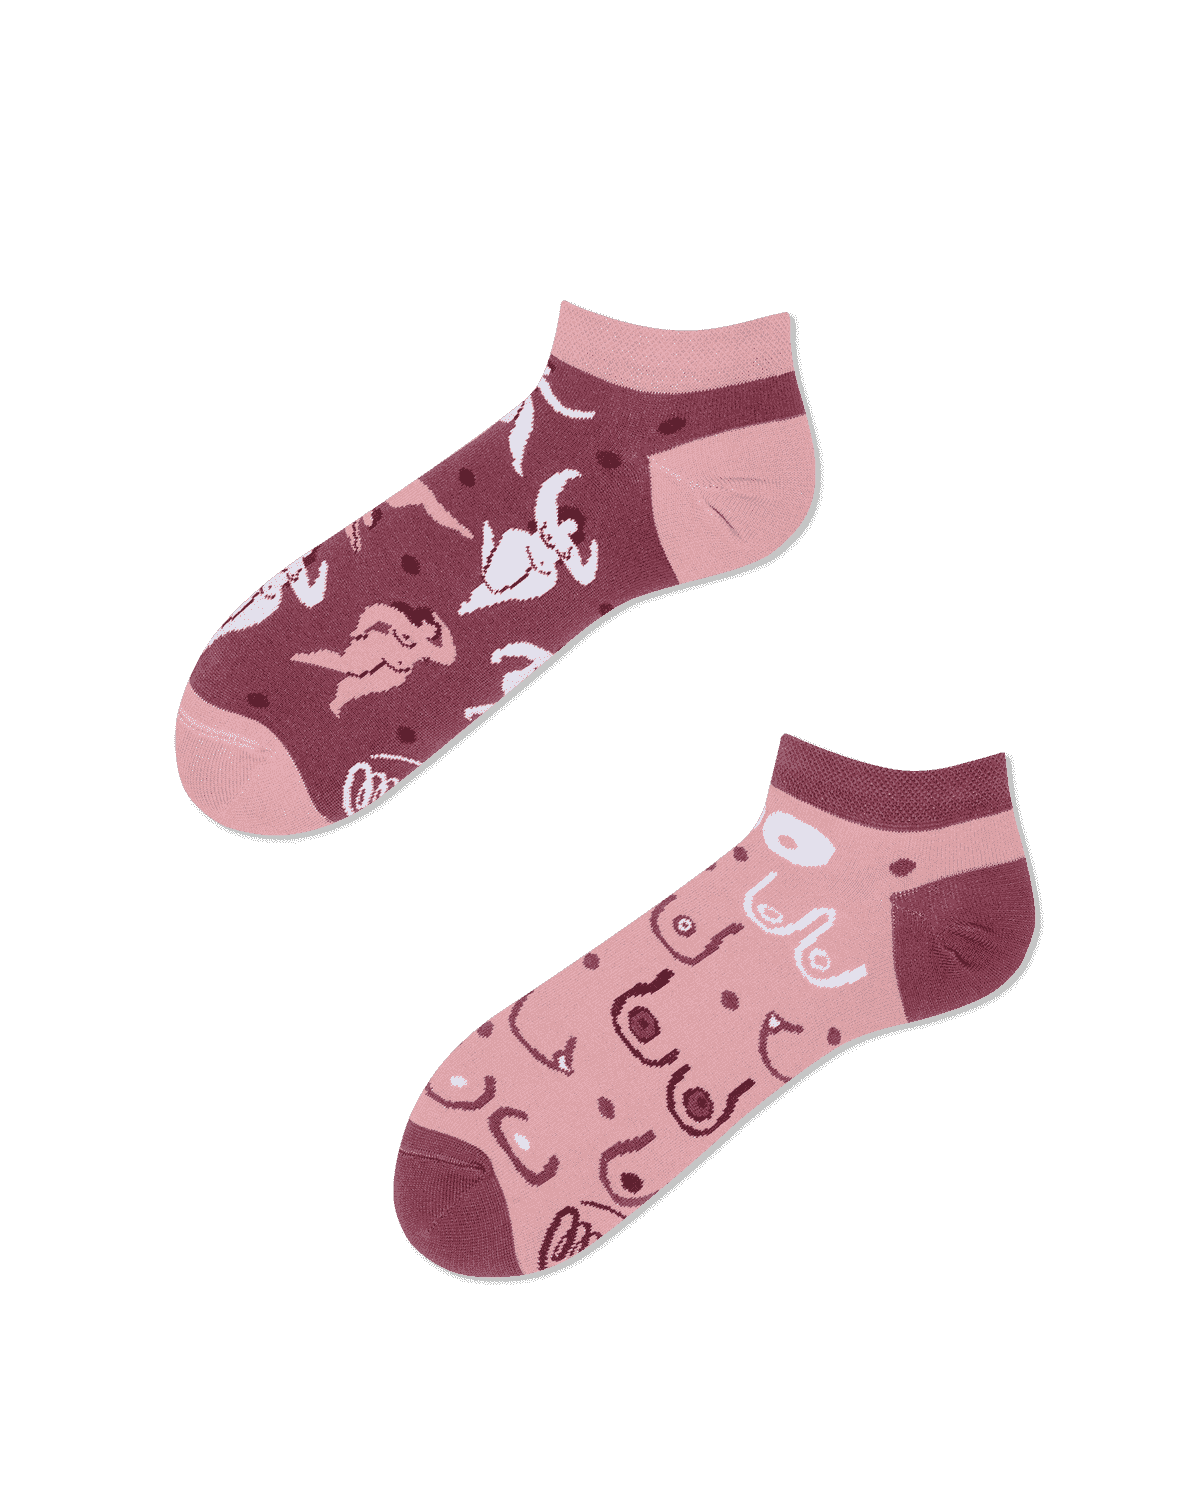 SIMPLY THE BREAST LOW - Body positivity low socks